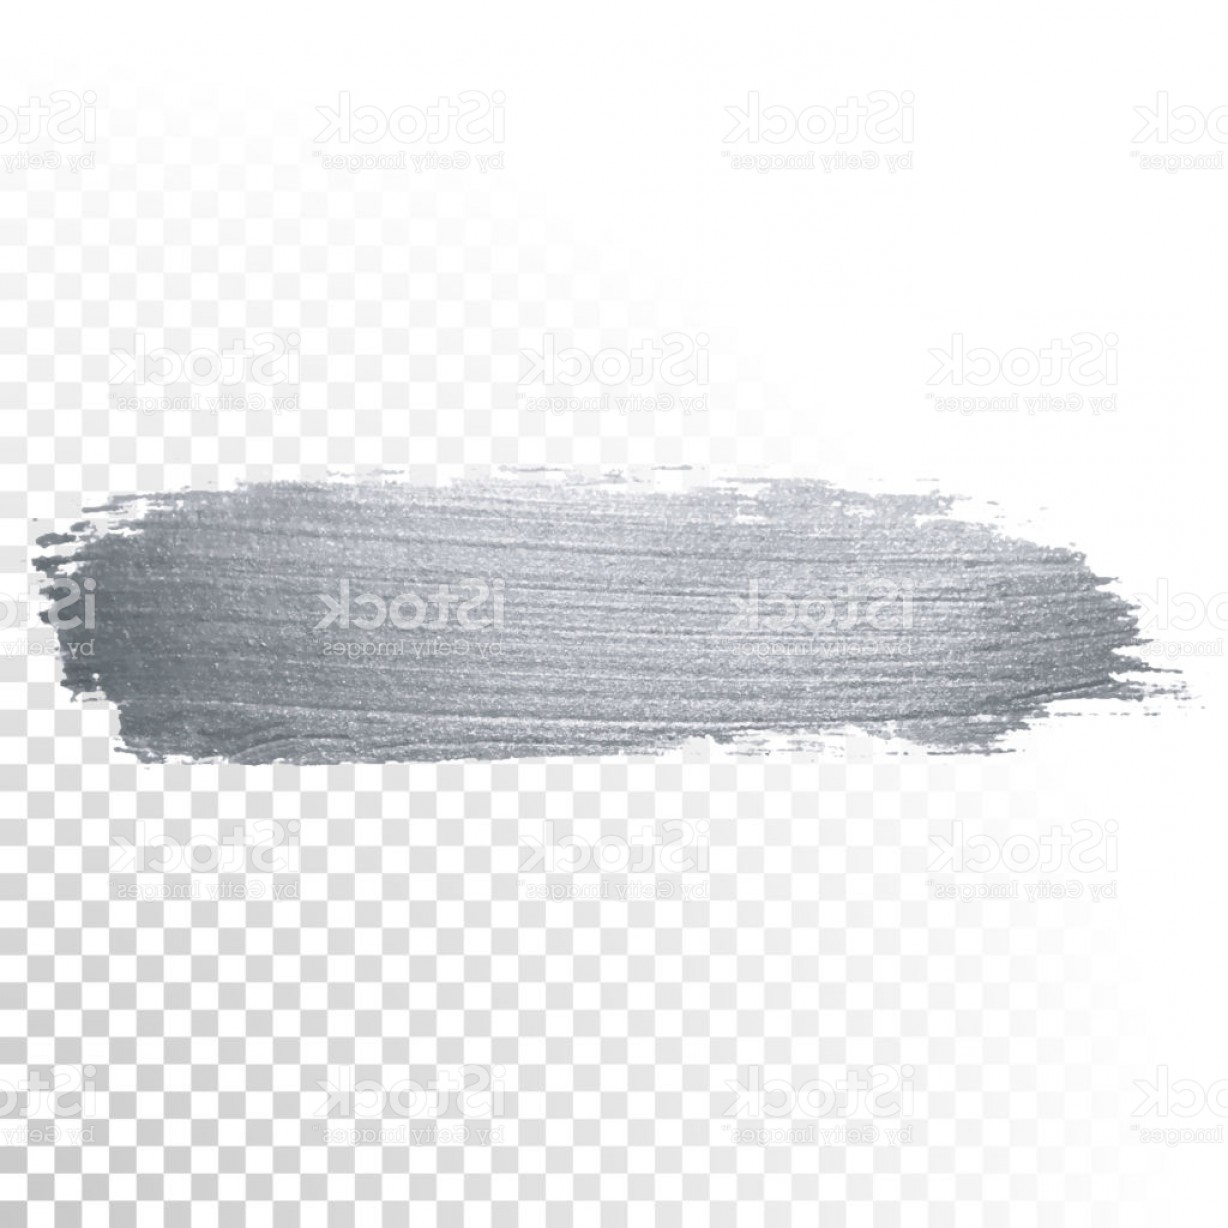 Paint Brushstroke Vector Clip Art: Silver Glitter Paint Brush Stroke Or Abstract Dab Smear With Smudge Texture On Gm